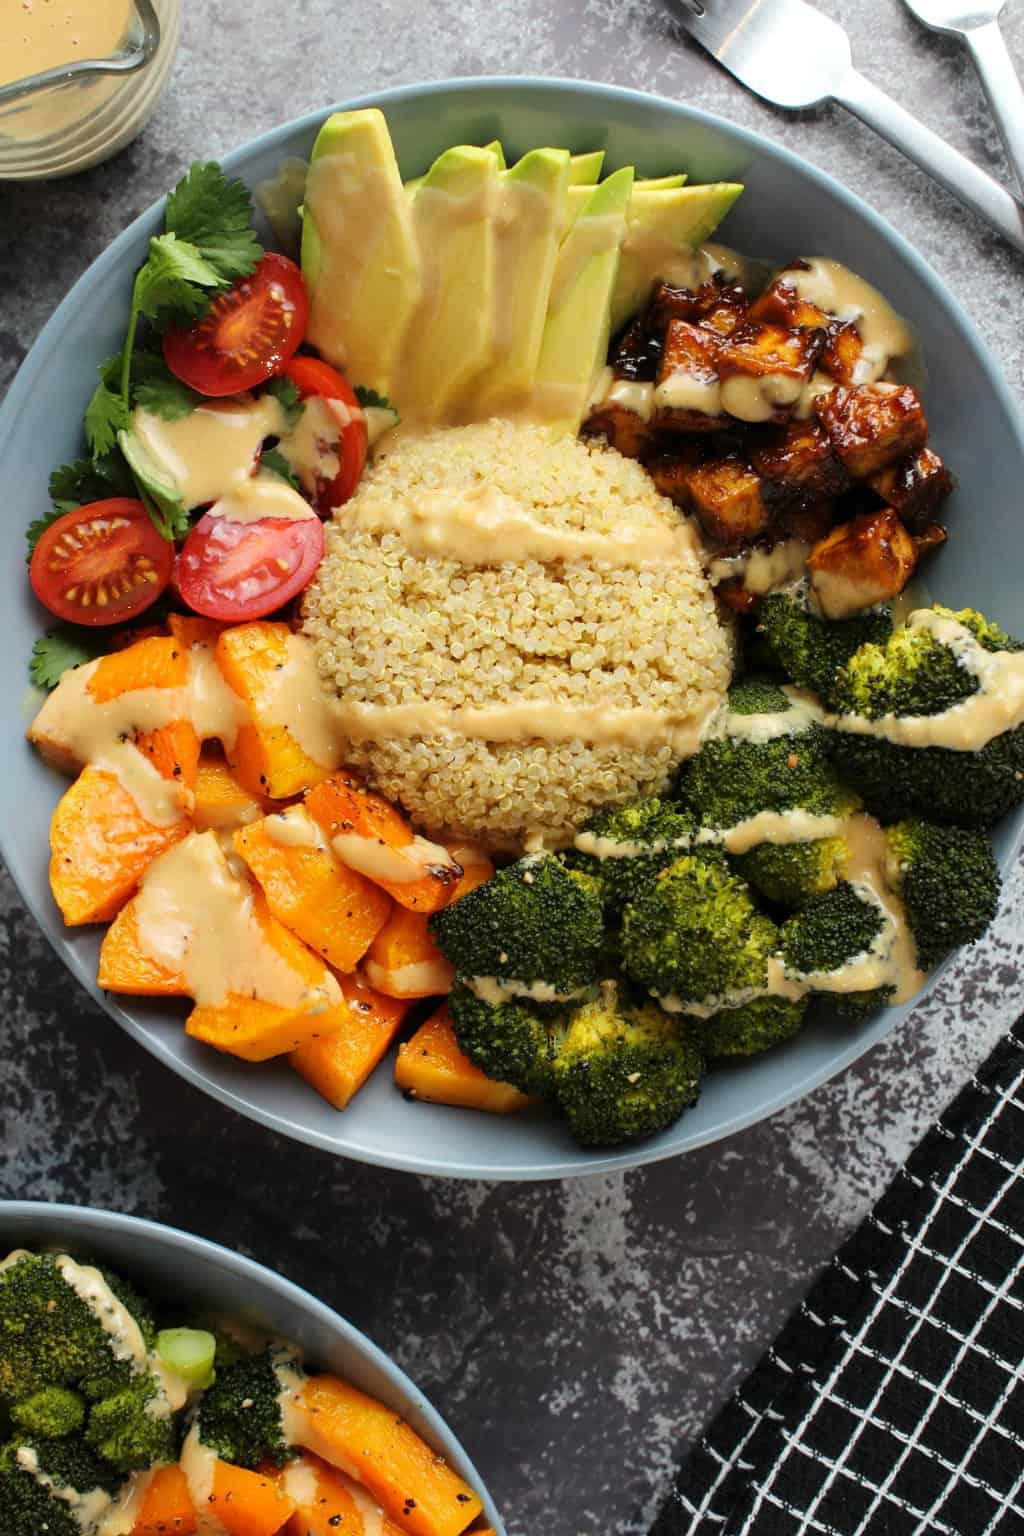 Vegan Buddha Bowl with quinoa and vegetables in a blue bowl.